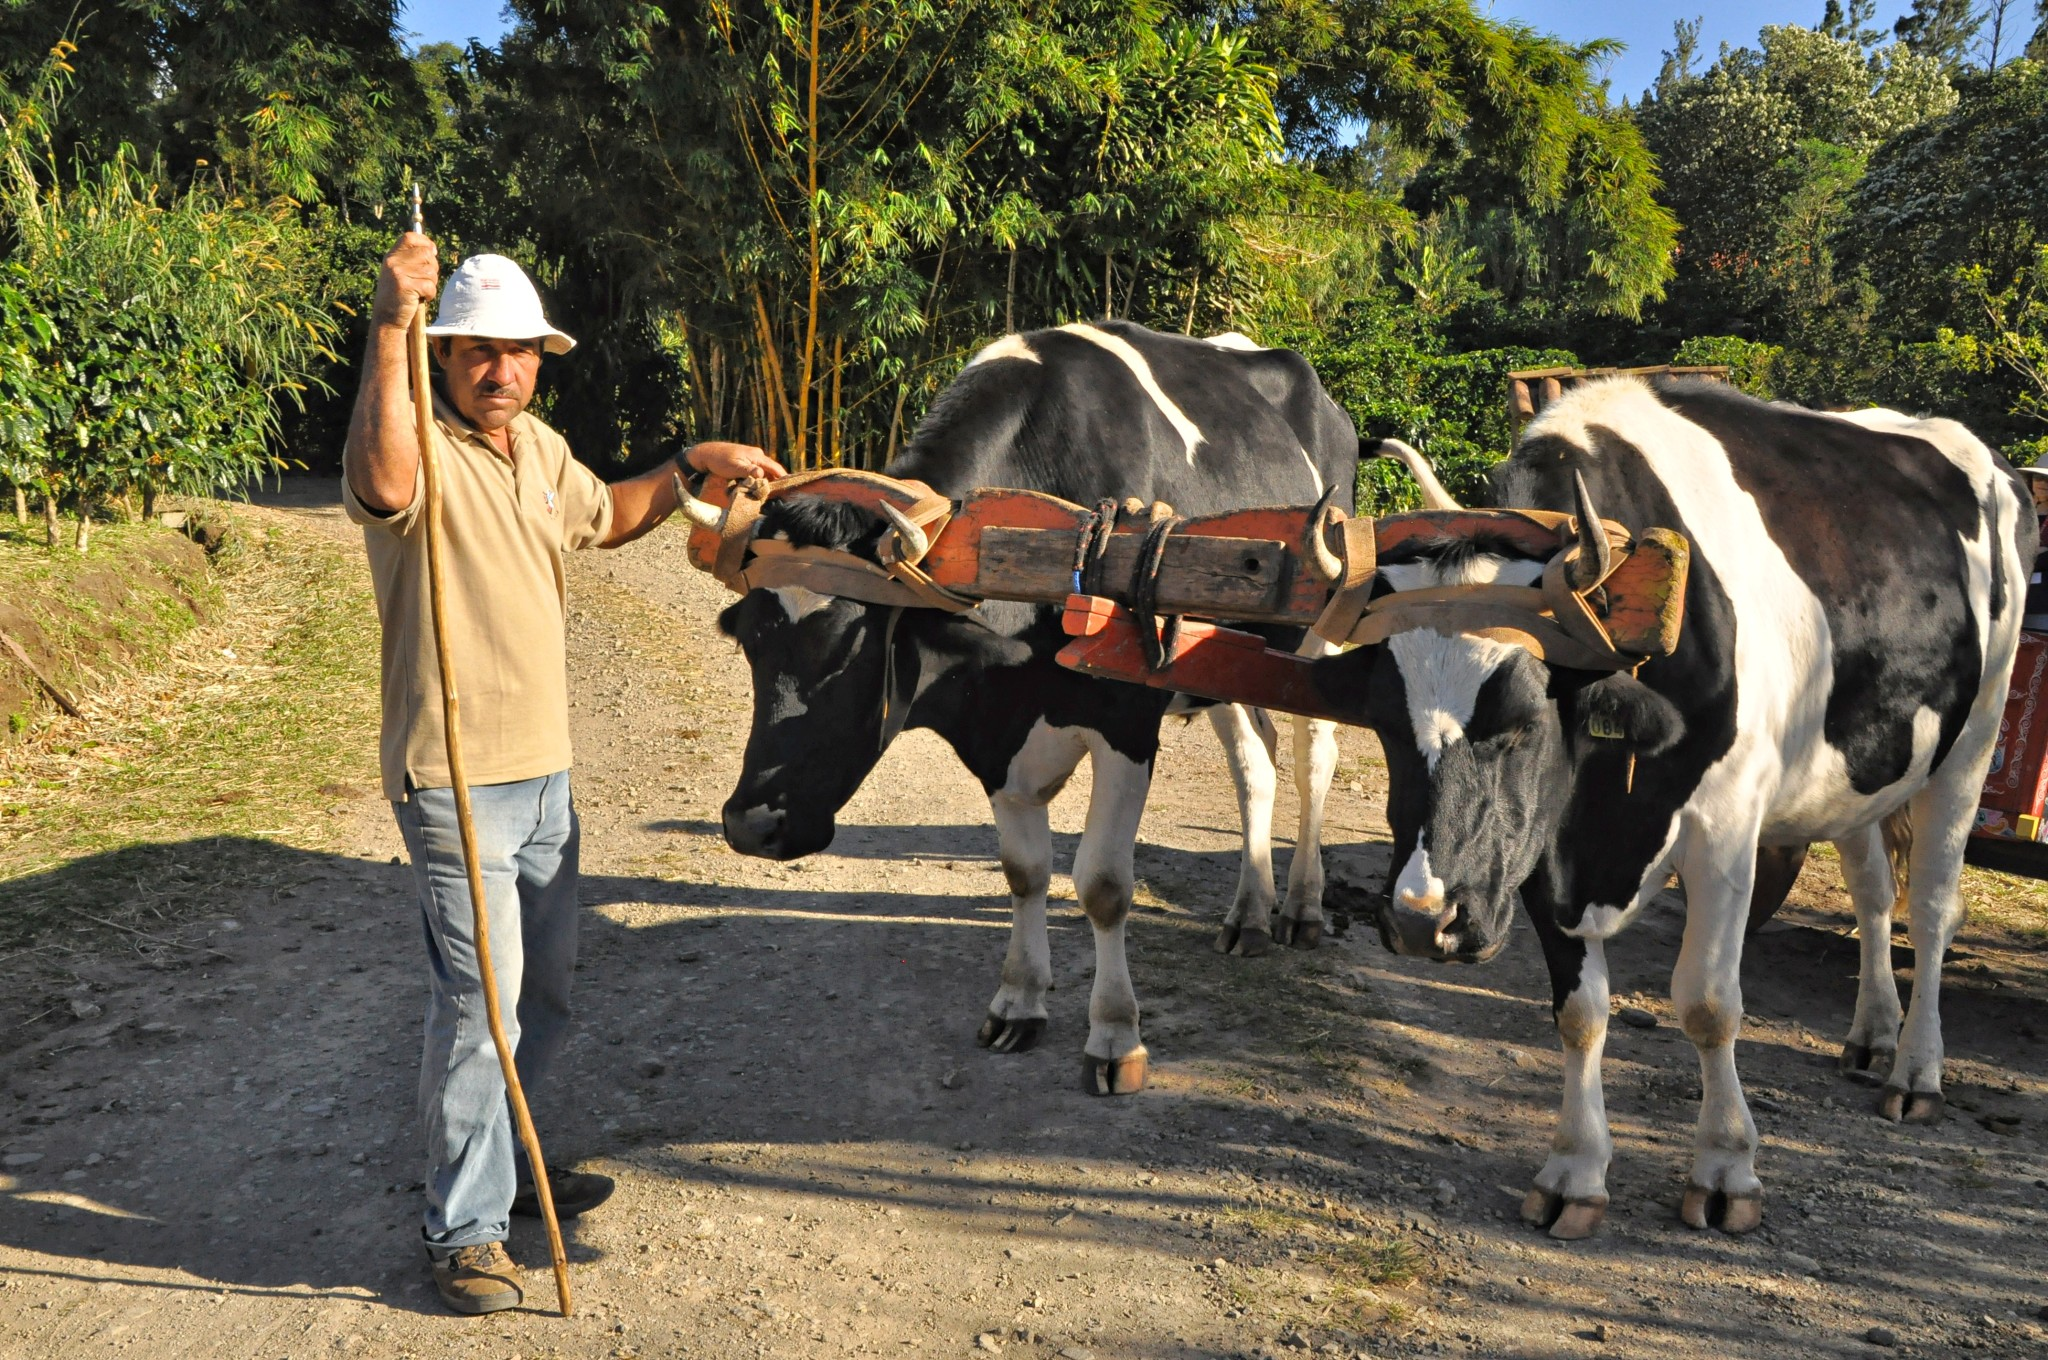 A Costa Rican man with his oxen and ox cart